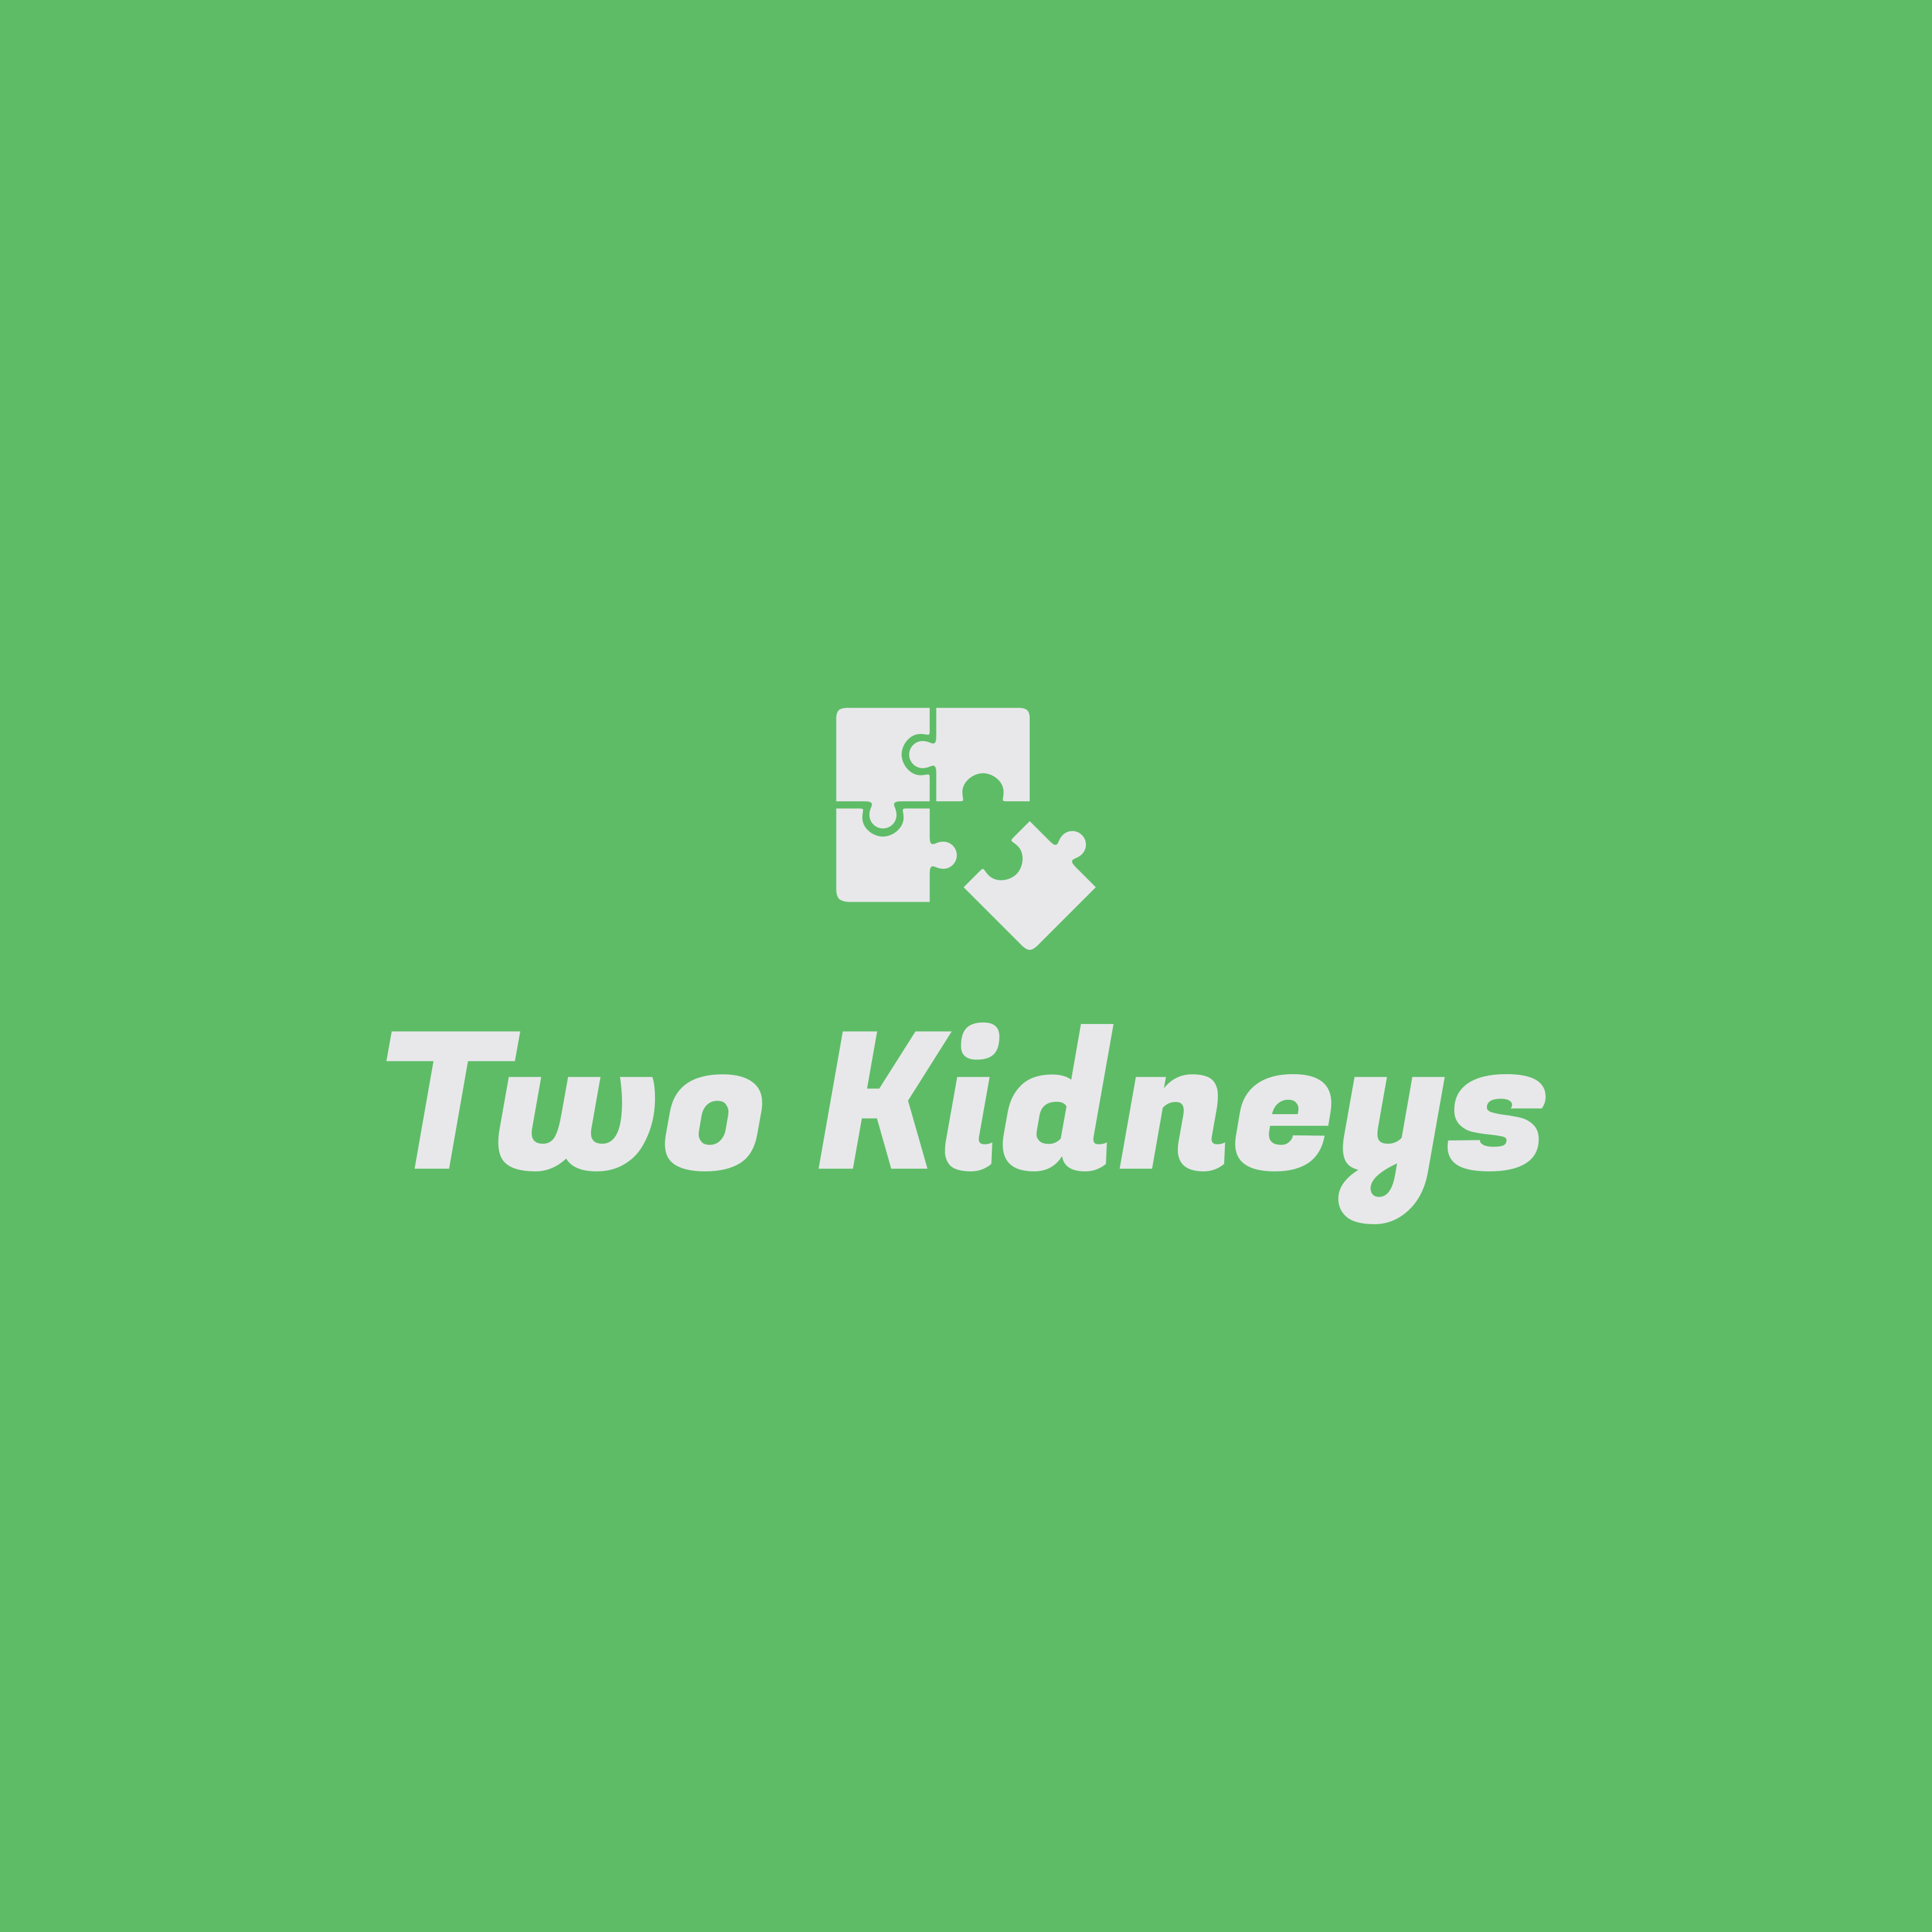 Two Kidneys